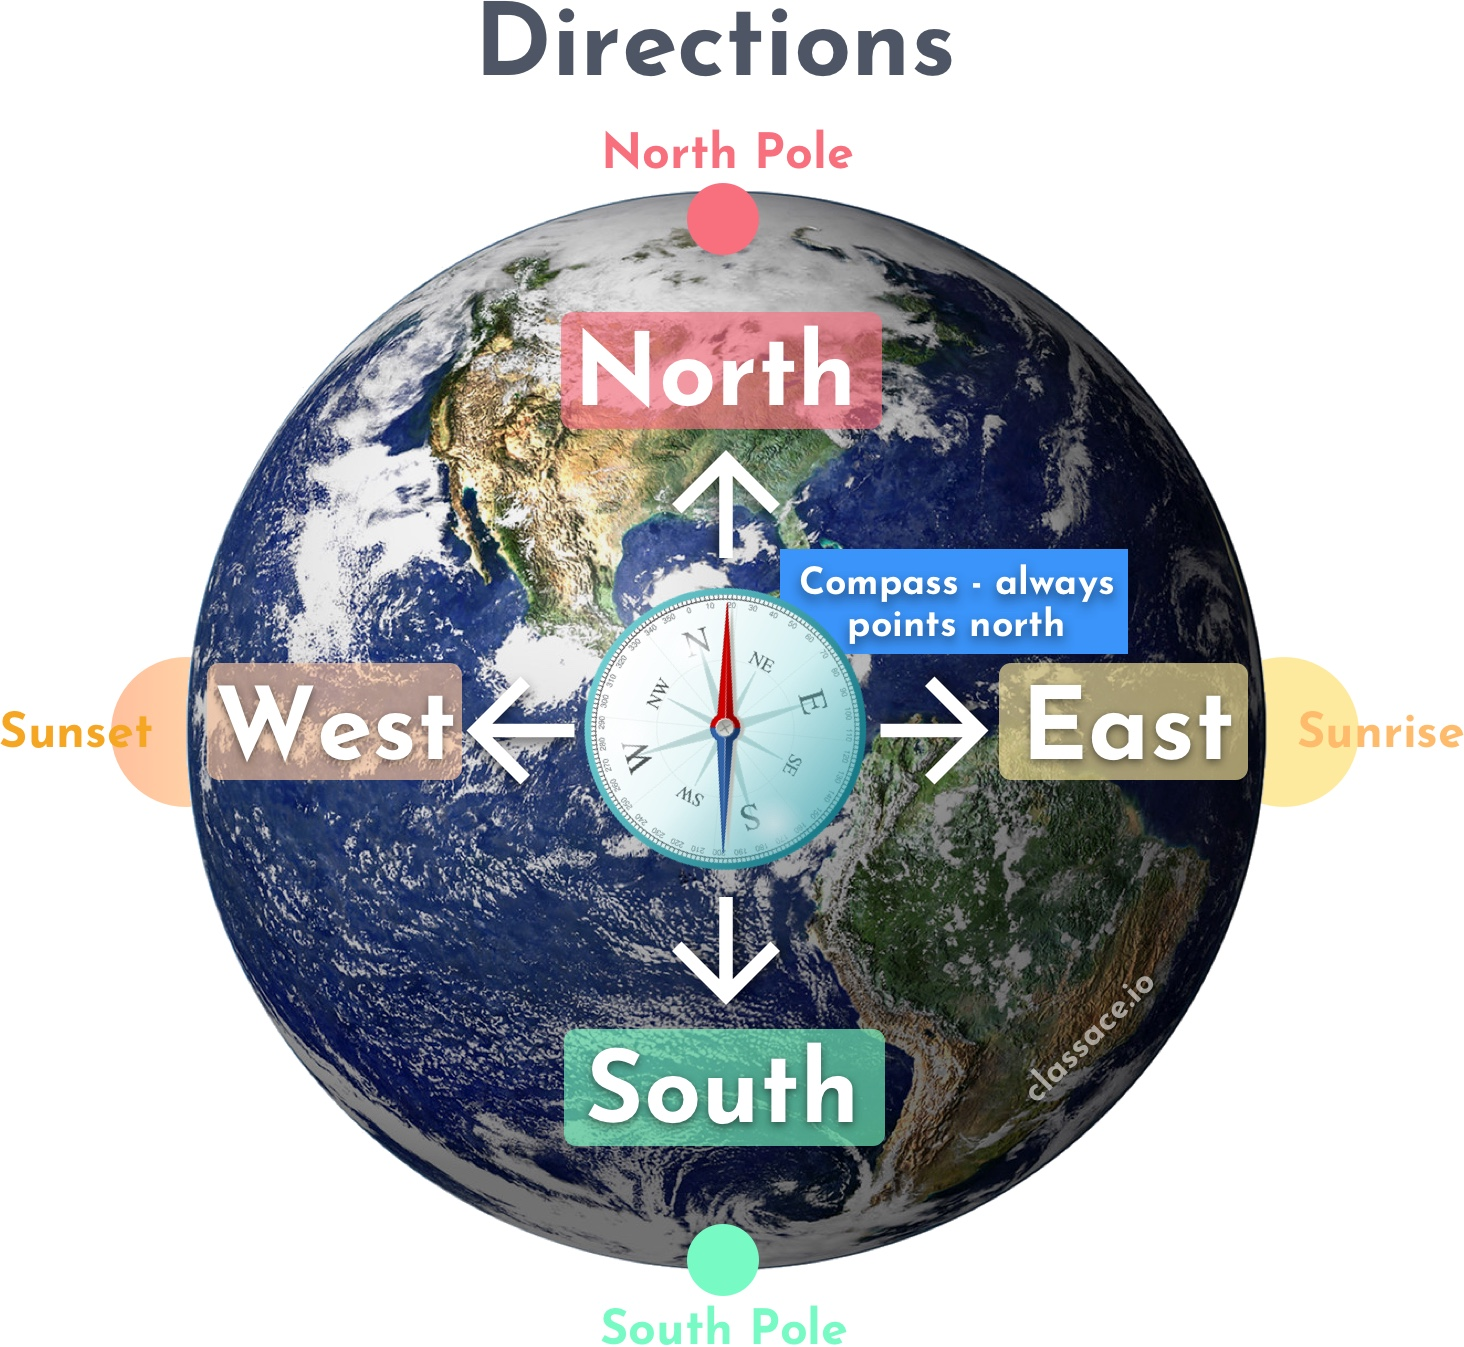 Compass Directions Cardinal Directions North South East West Compass on Globe North Pole South Pole